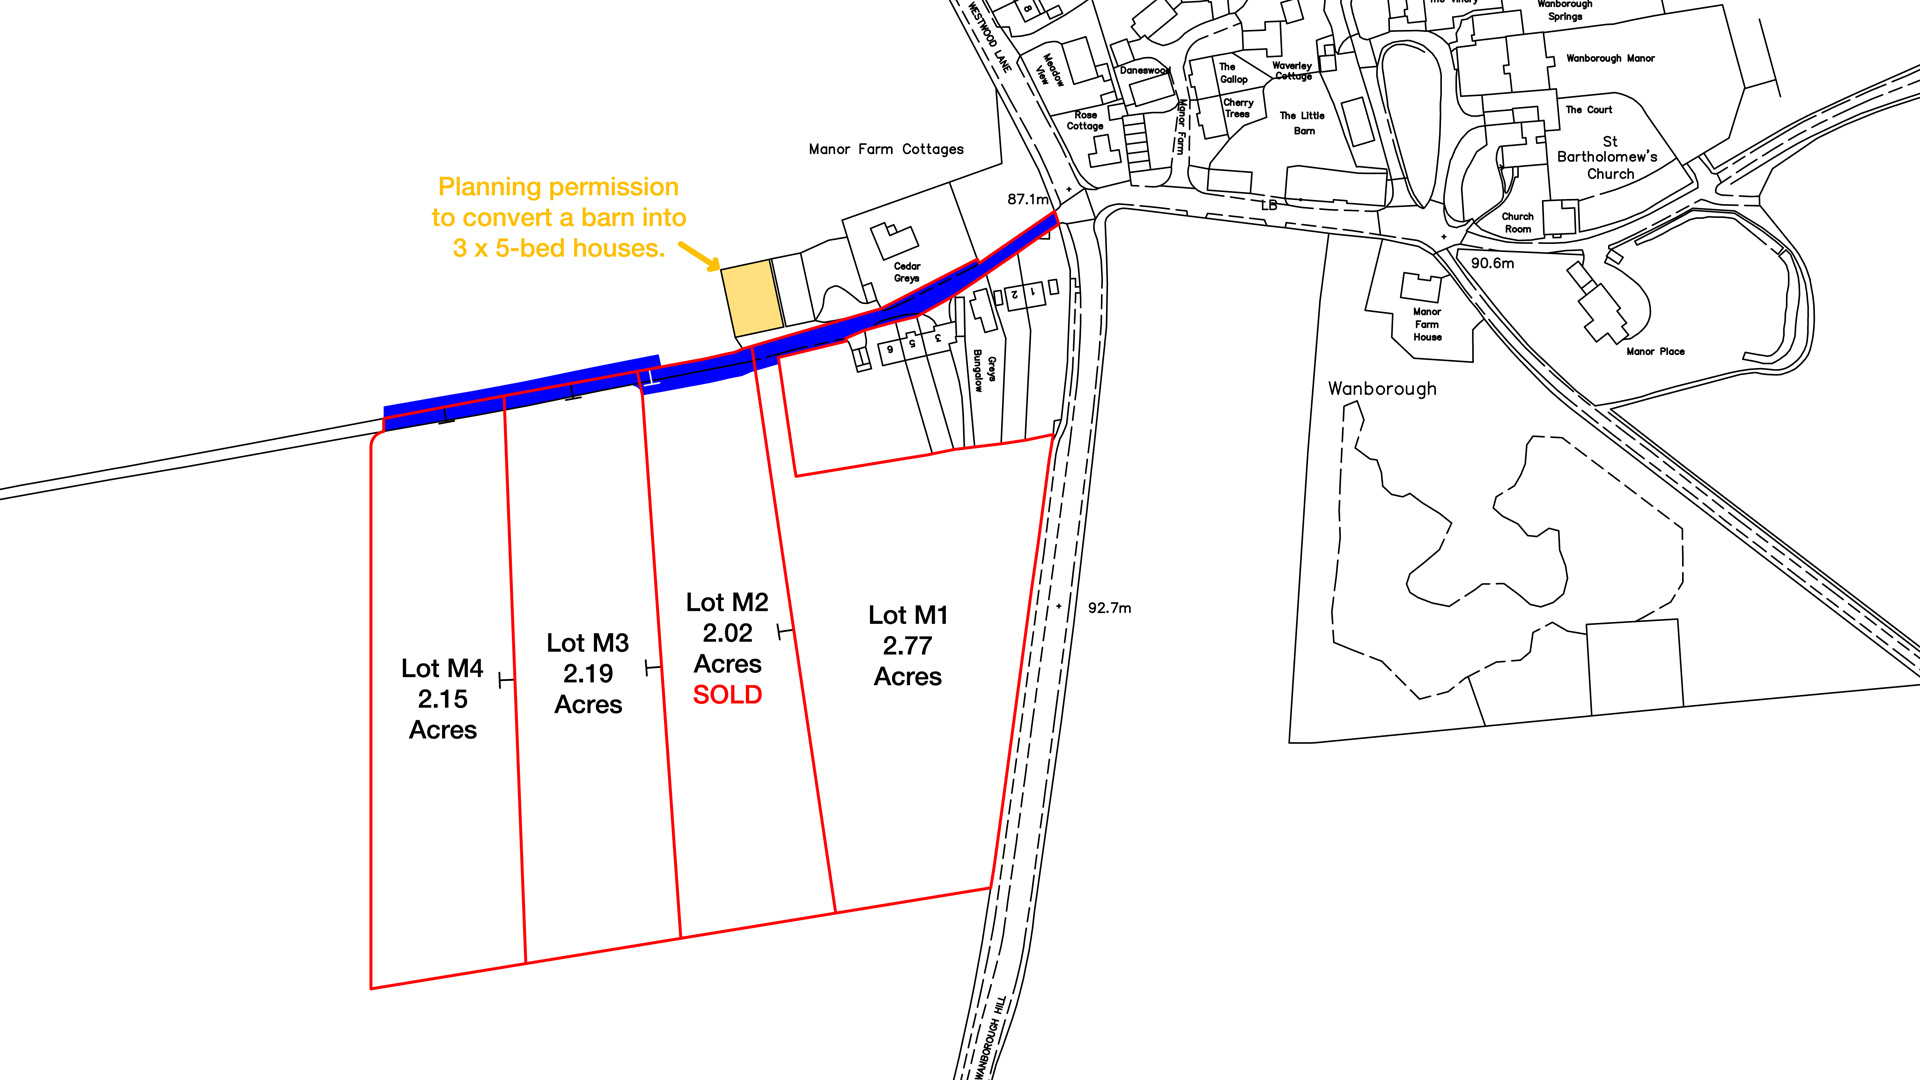 Land for sale at Manor Farm Cottages site plan